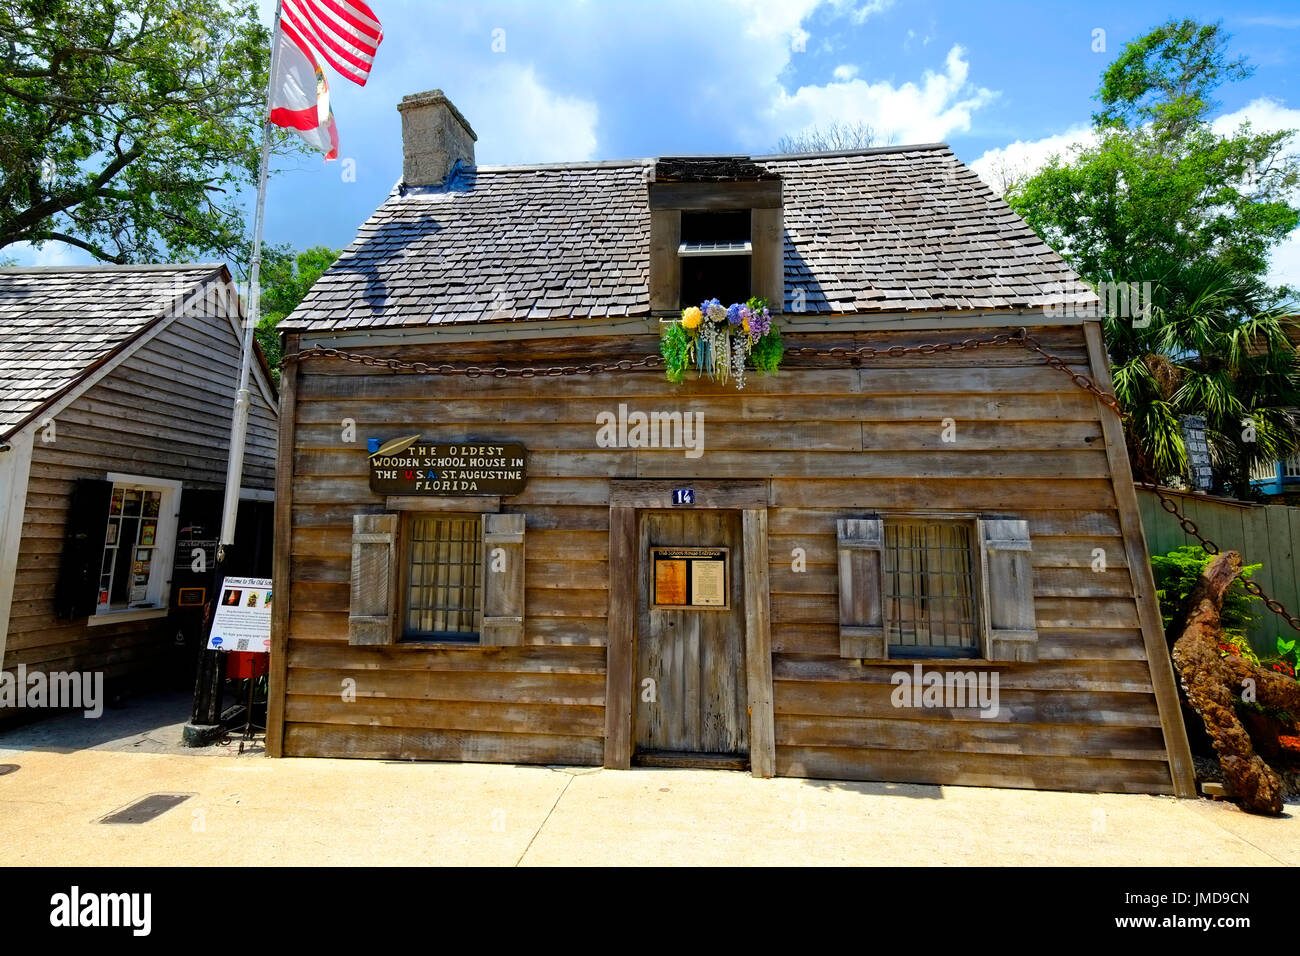 Oldest wooden school house in America in the St George